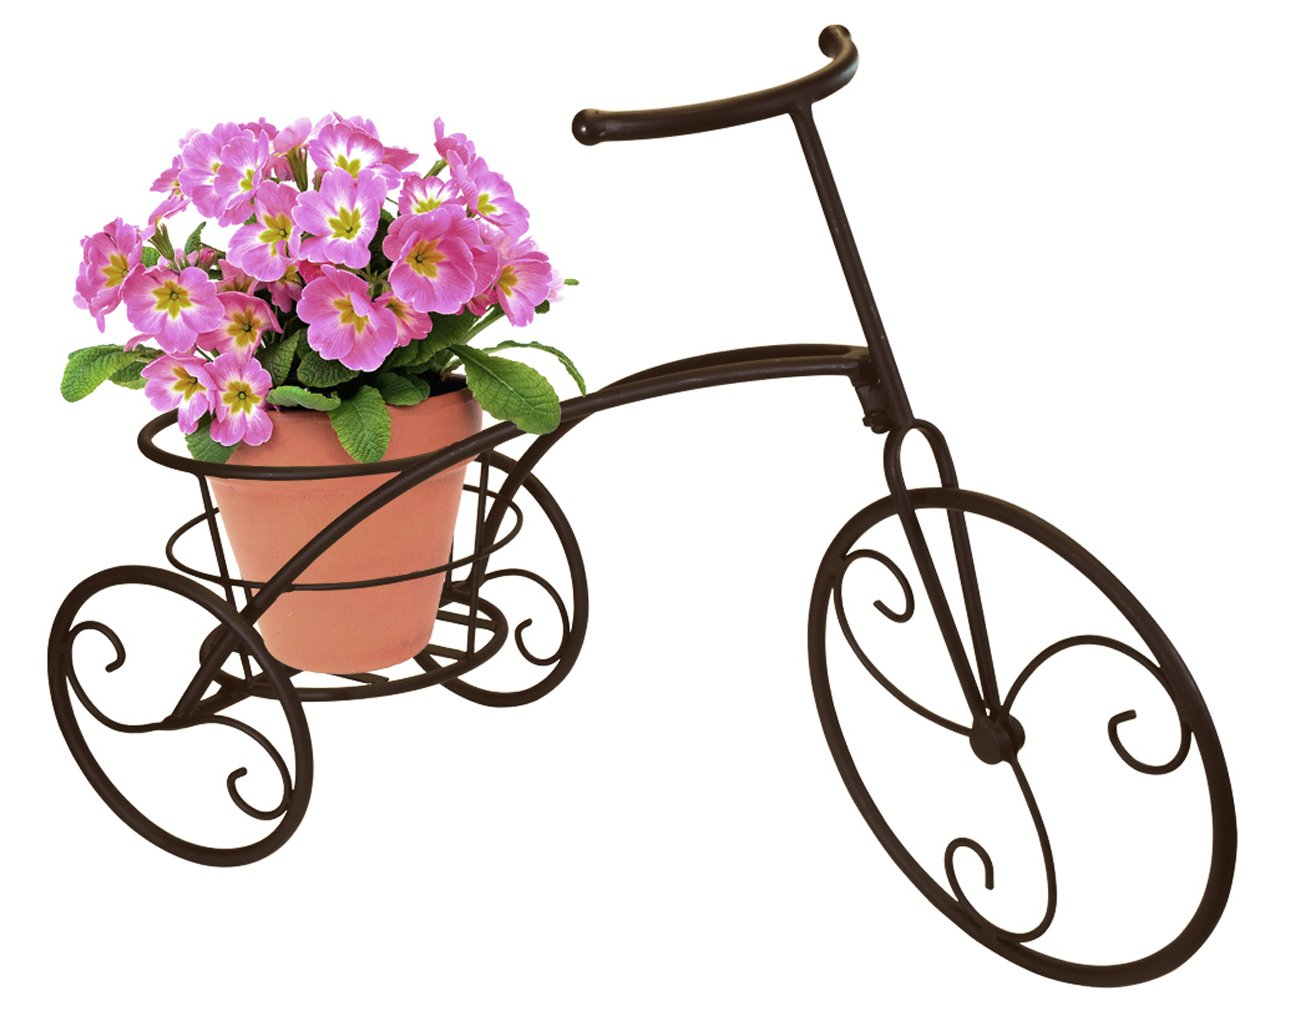 Sorbus Tricycle Plant Stand - Flower Pot Cart Holder - Ideal for Home, Garden, Patio - Great Gift for Plant Lovers, Housewarming, Mother's Day - Parisian Style (Single Pot, Bronze)